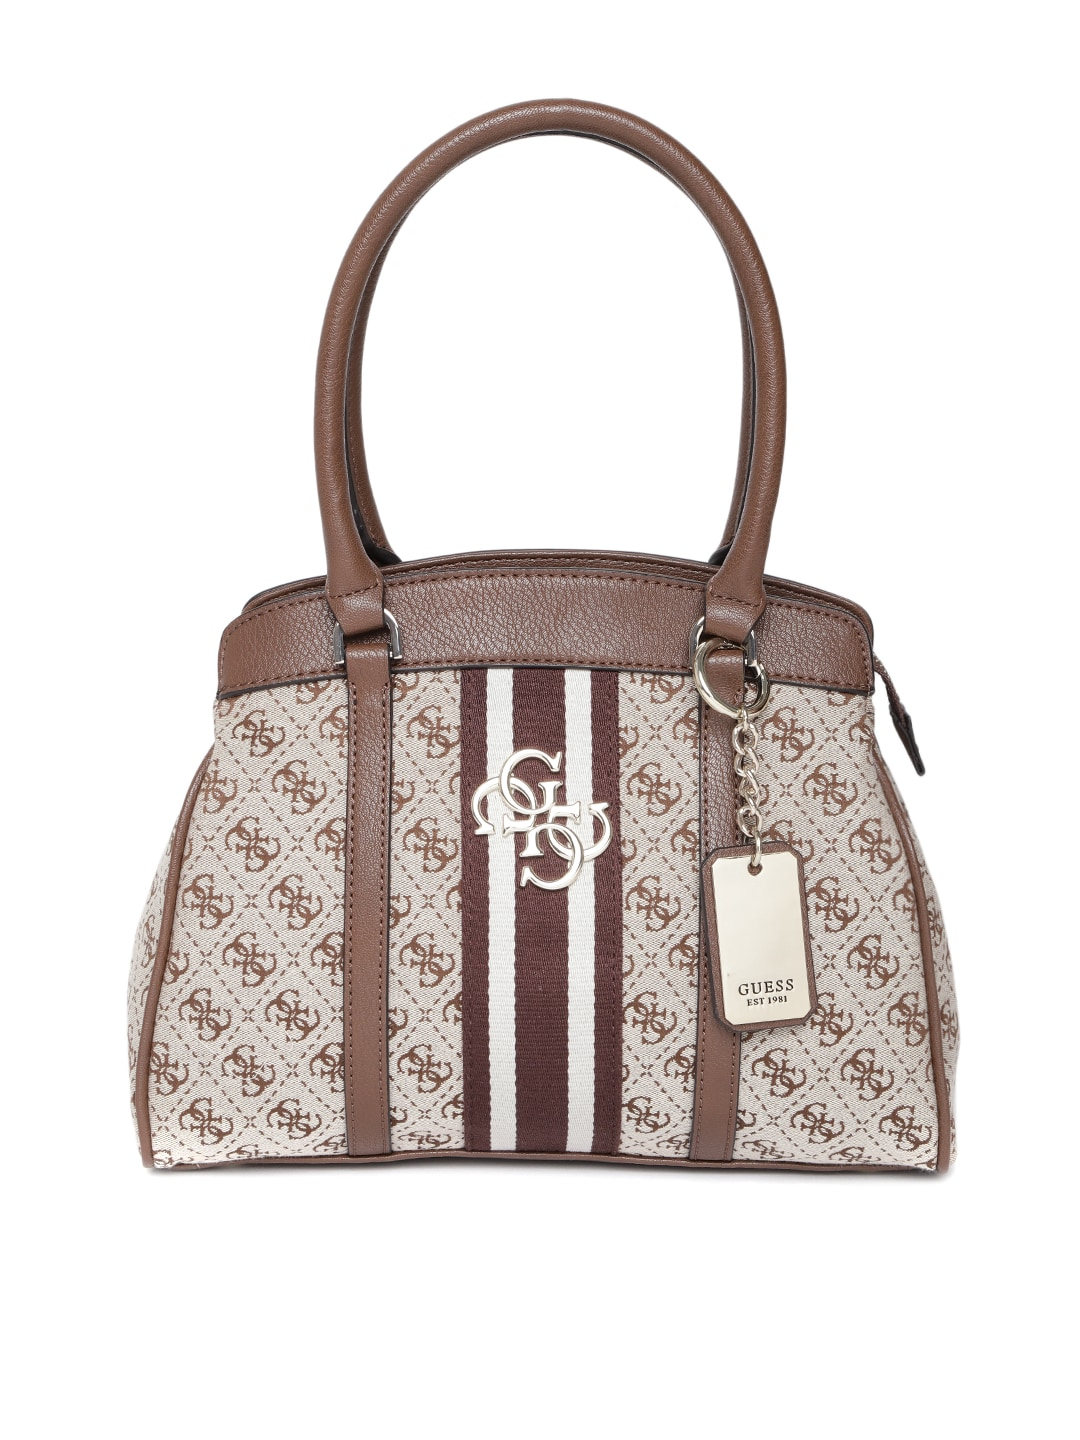 Guess New Handbags Collection